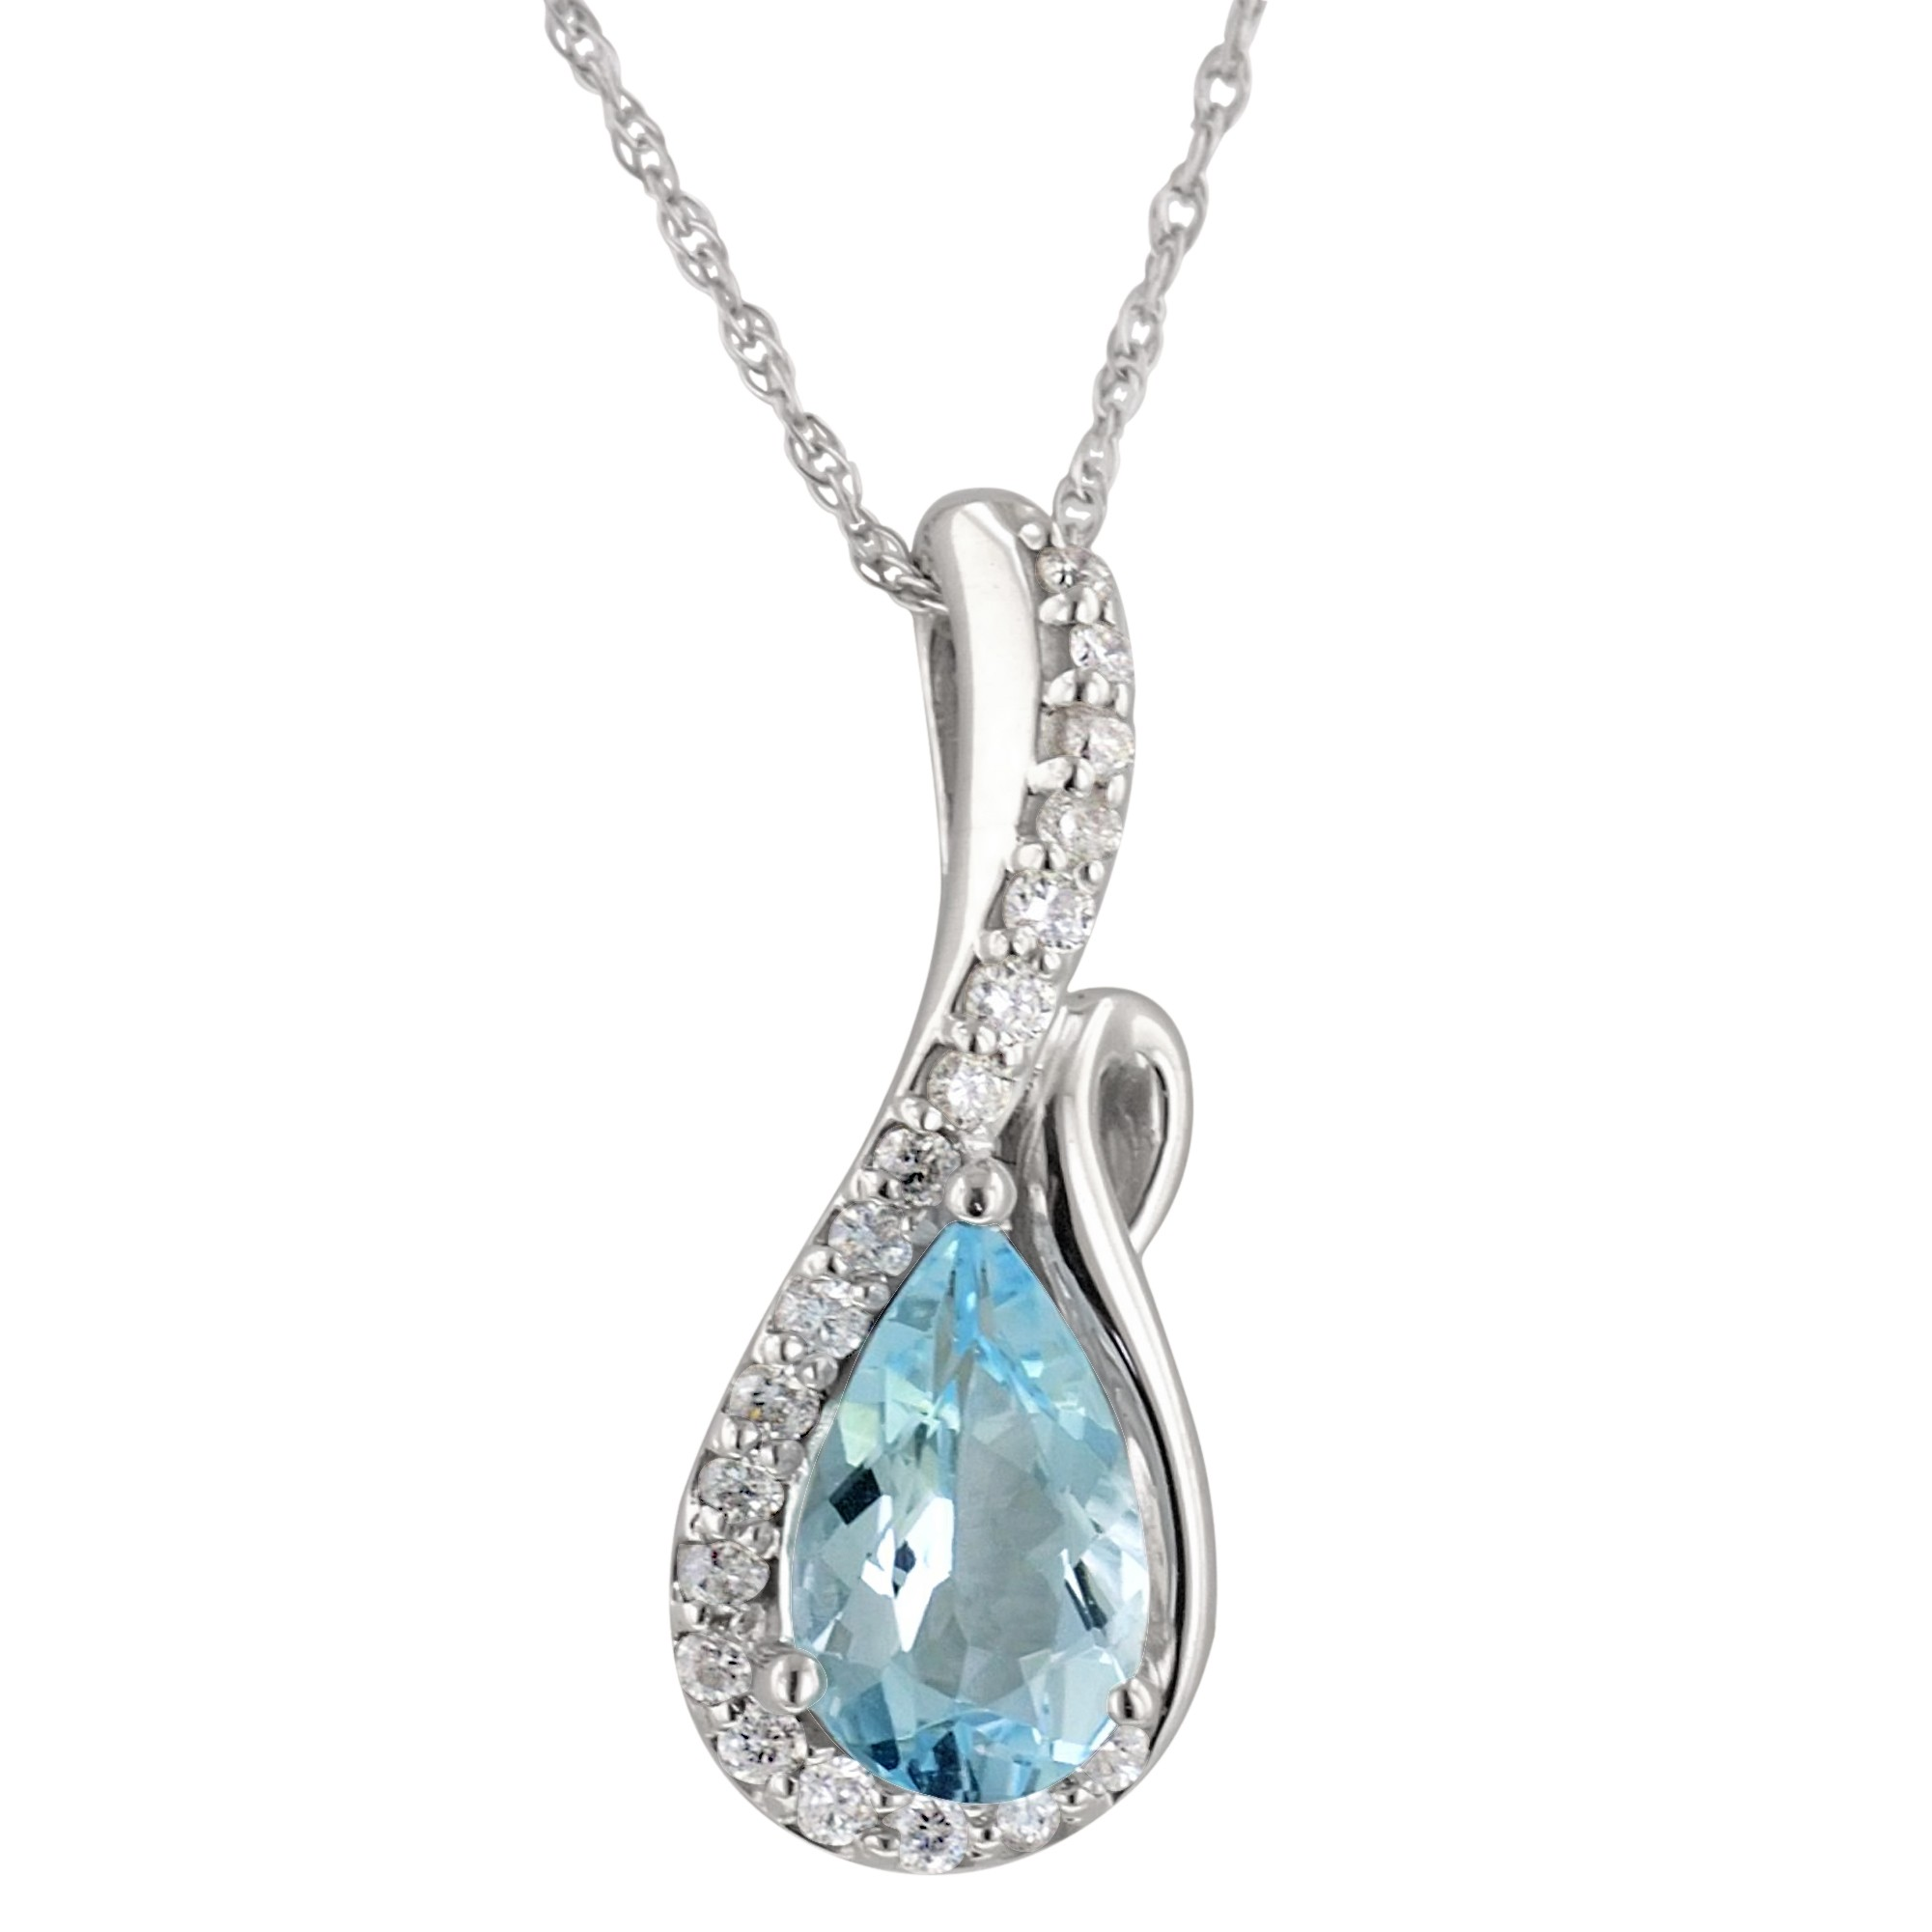 jewelry sterling necklace overstock aquamarine today product free shipping miadora pendant silver watches